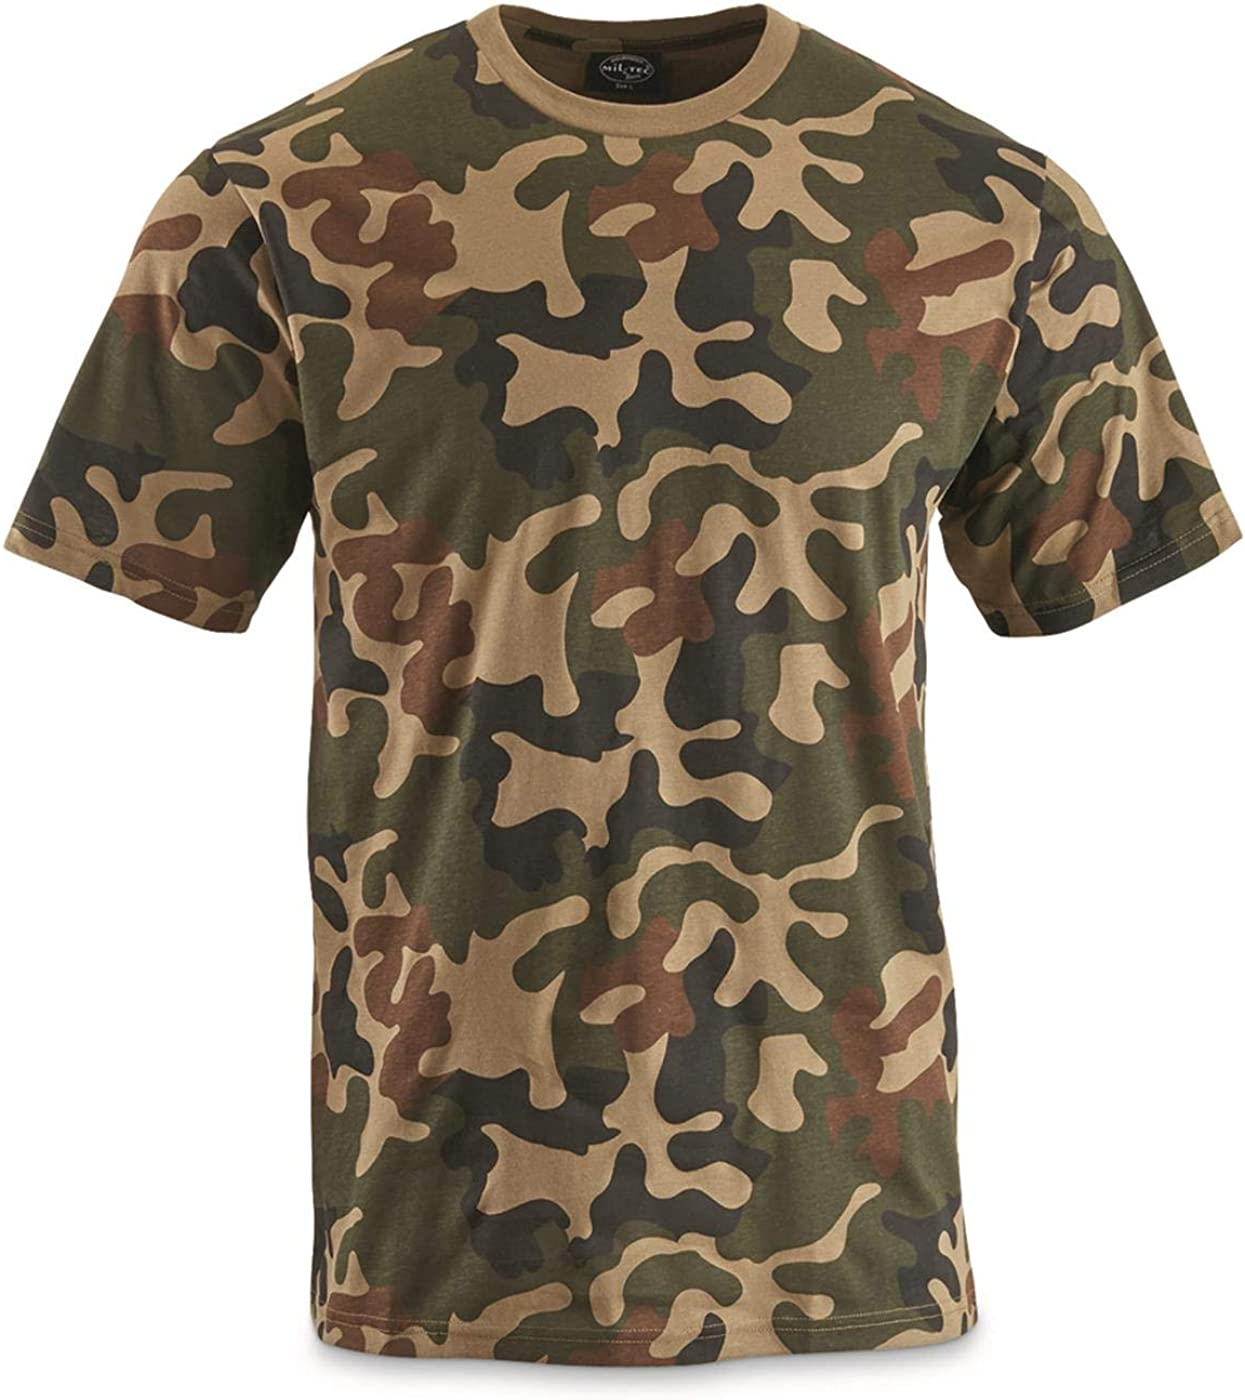 Fort All items in the store Worth Mall Surplus Mil-Tec Camo T-Shirt Polish Large Woodland